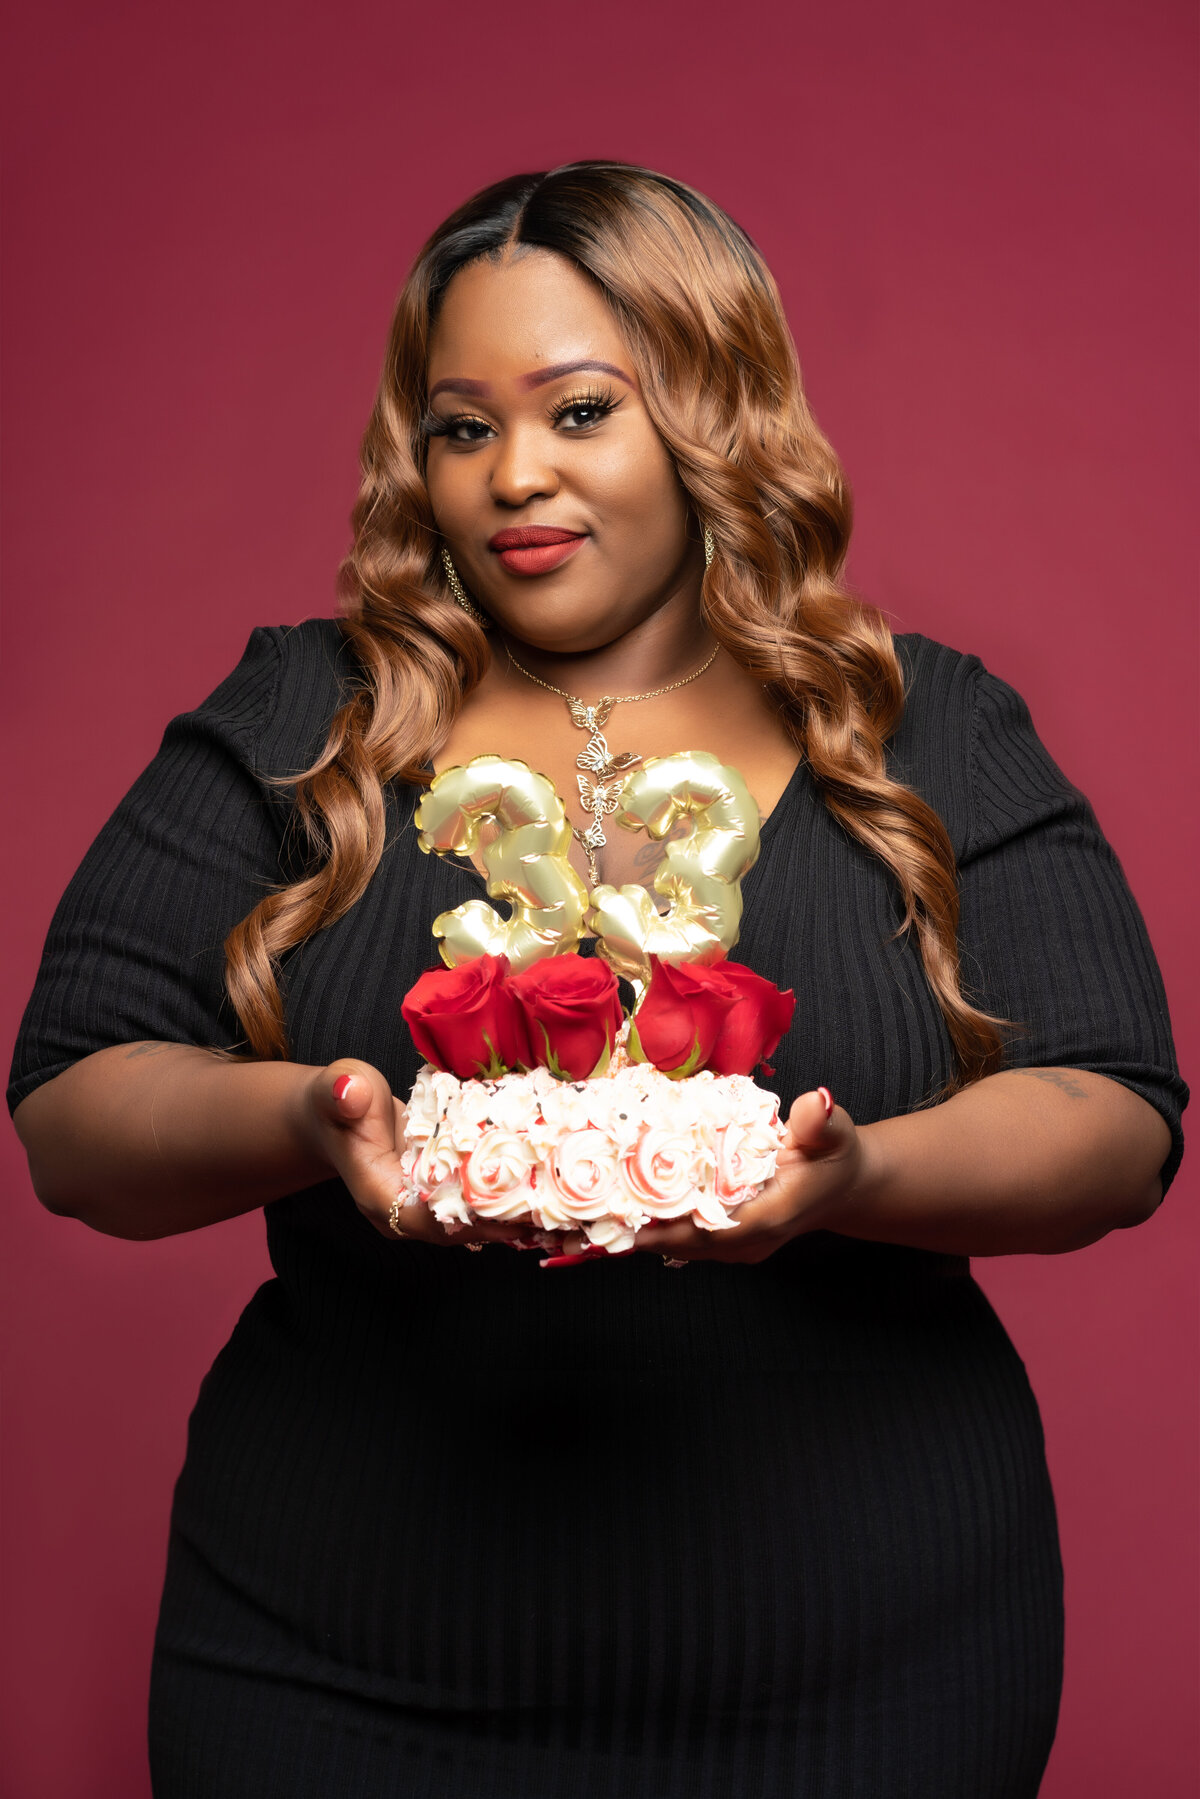 Black curvy woman in black dress with birthday cake